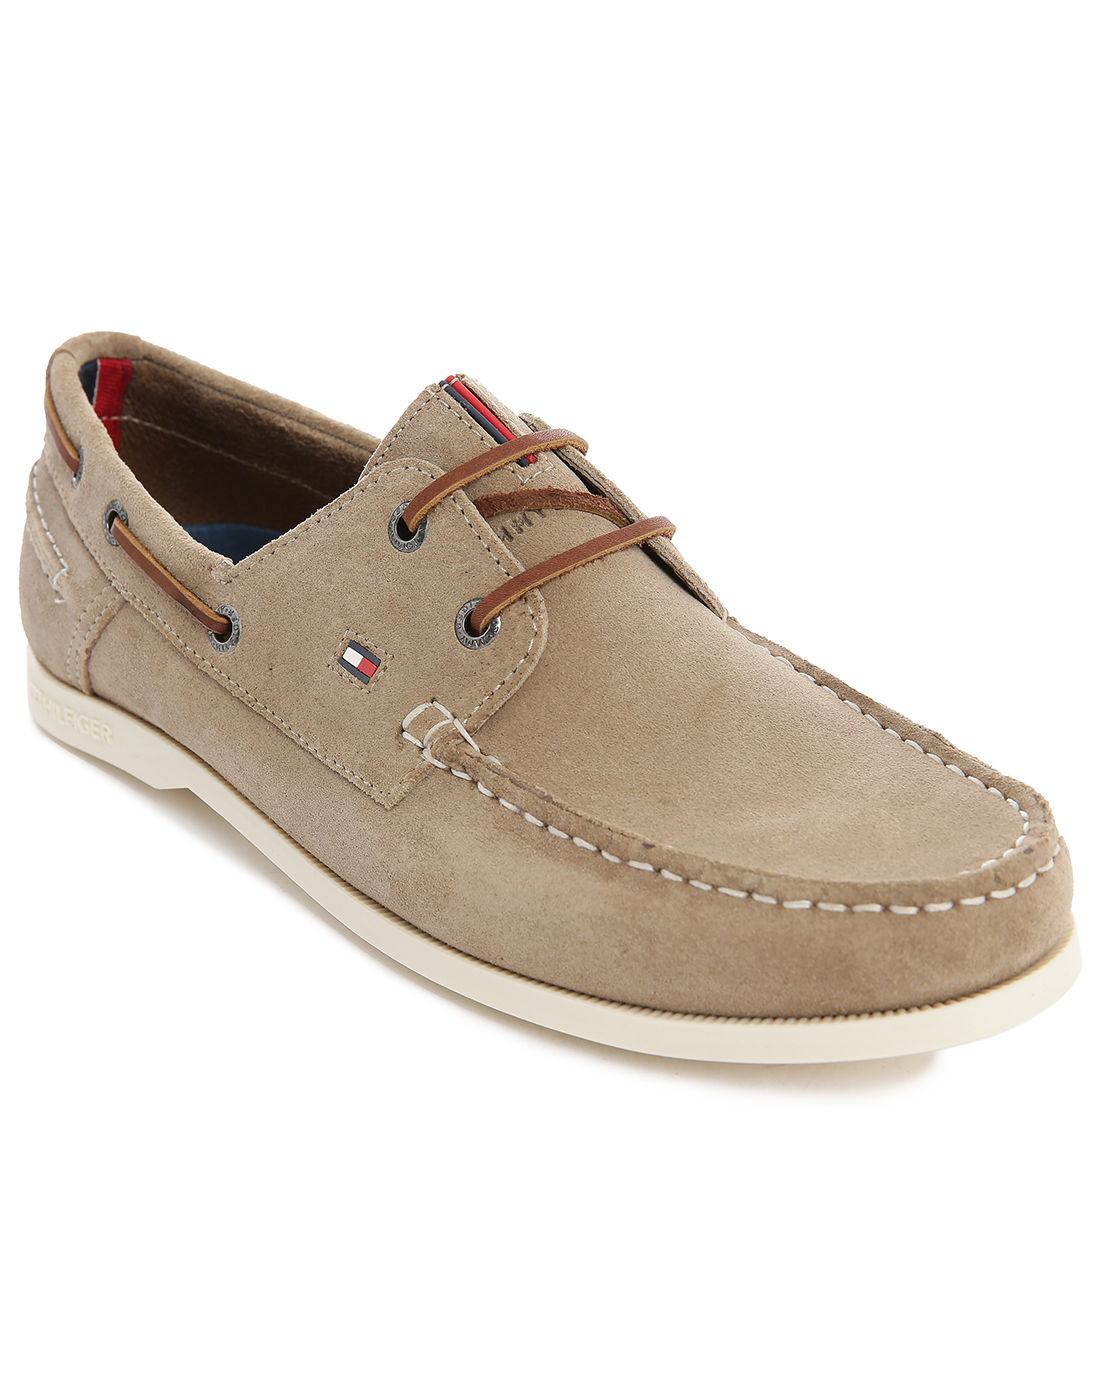 hilfiger beige suede chino boat shoes in beige for